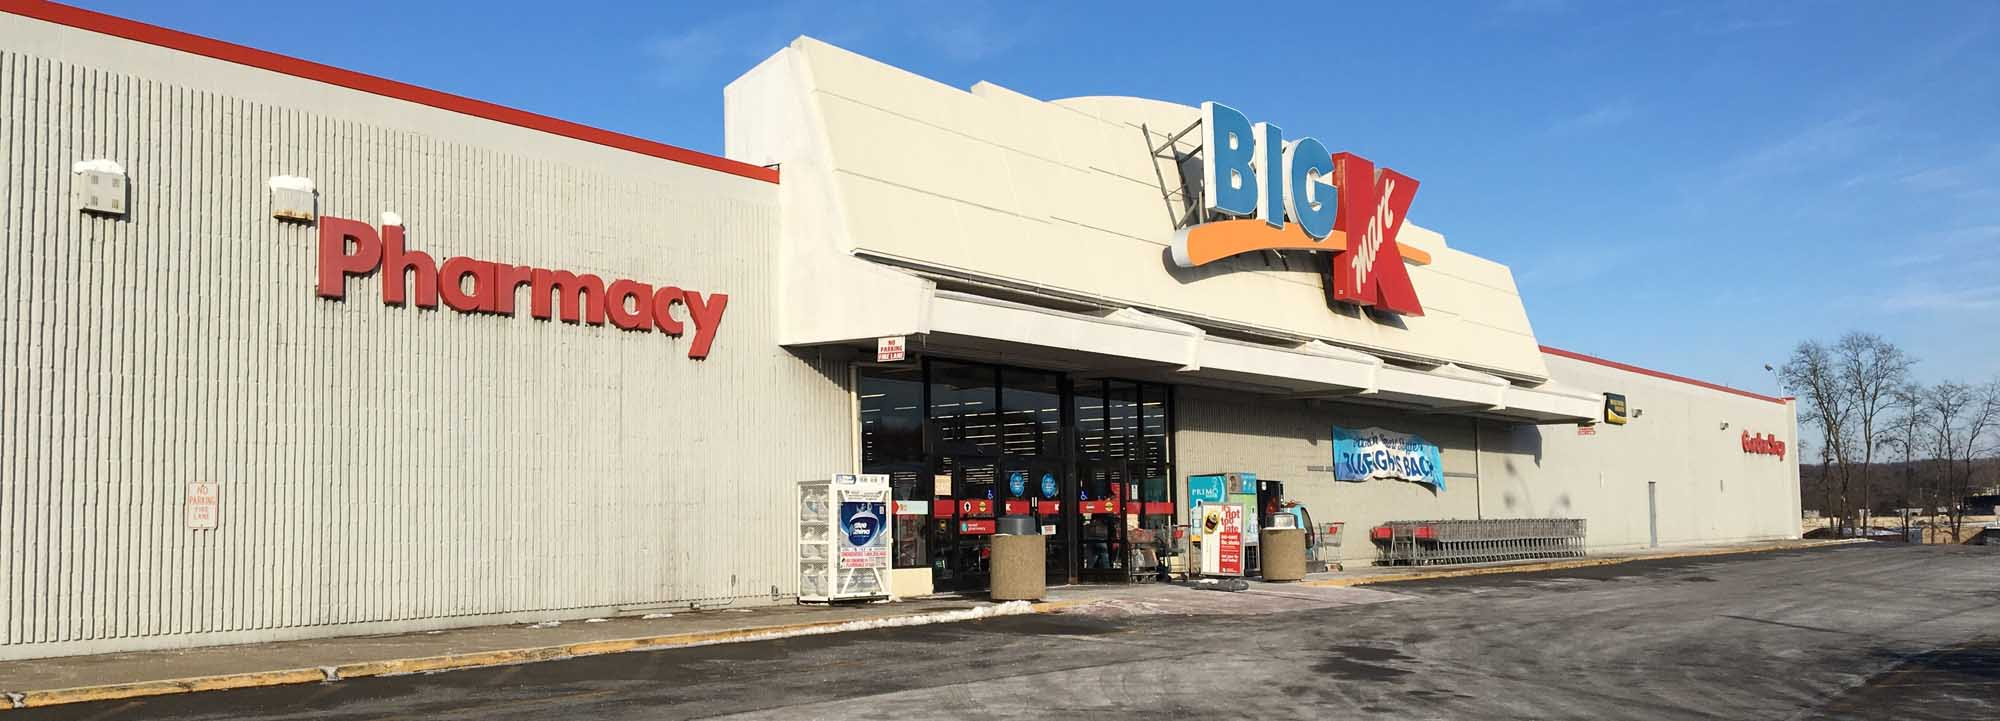 Kmart gets the ax | News, Sports, Jobs - Morning Journal